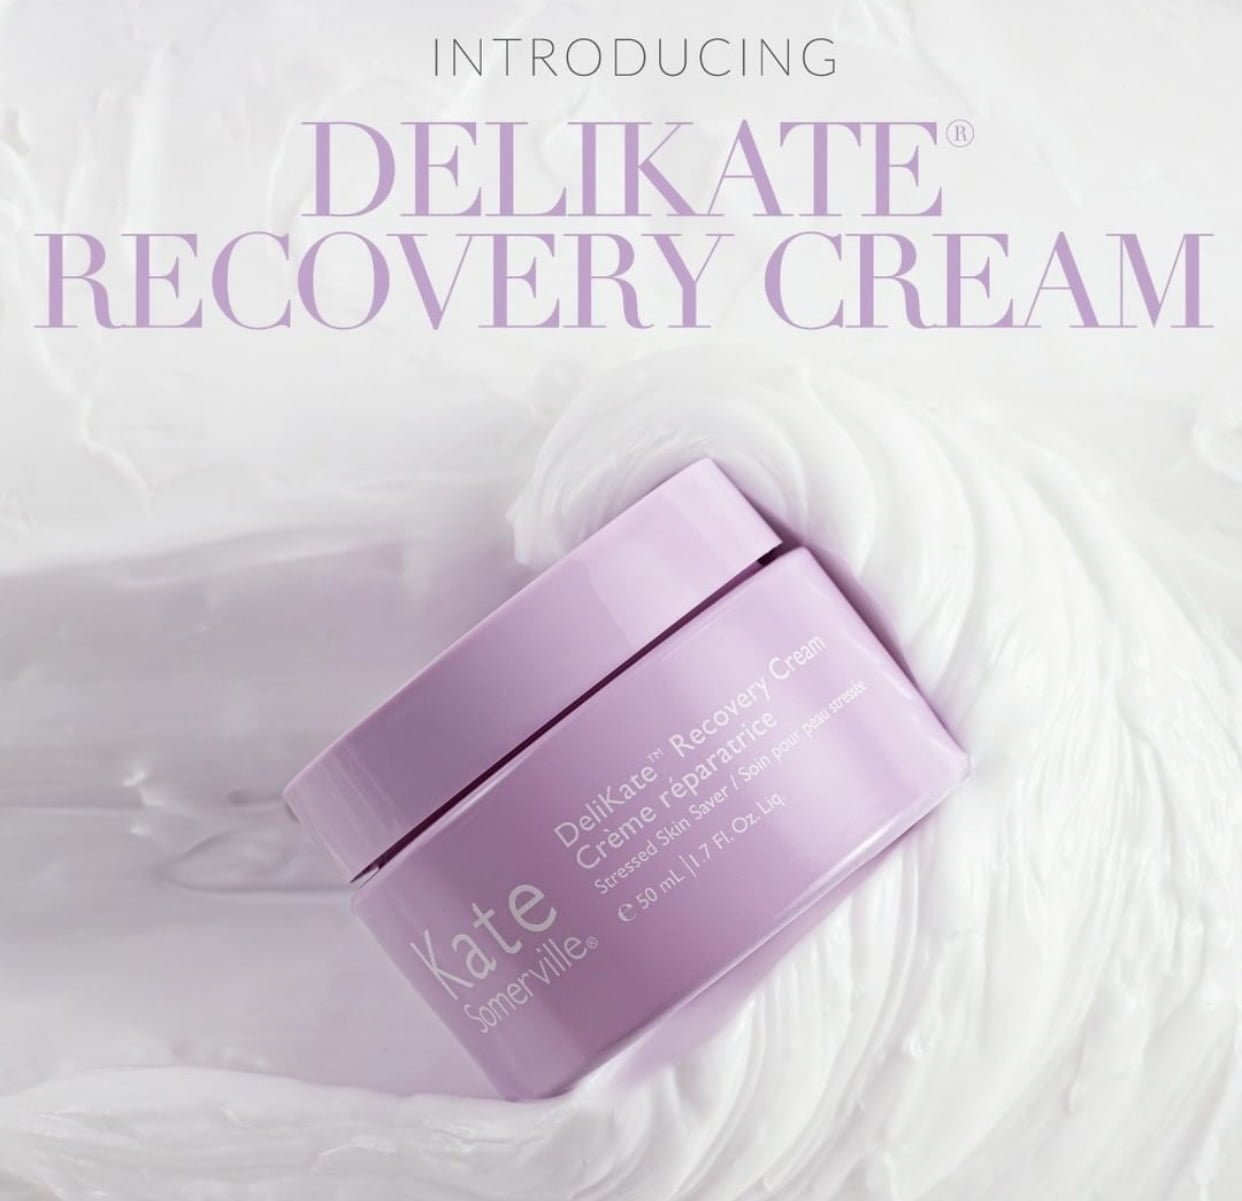 DeliKate Recovery Cream by kate somerville #3